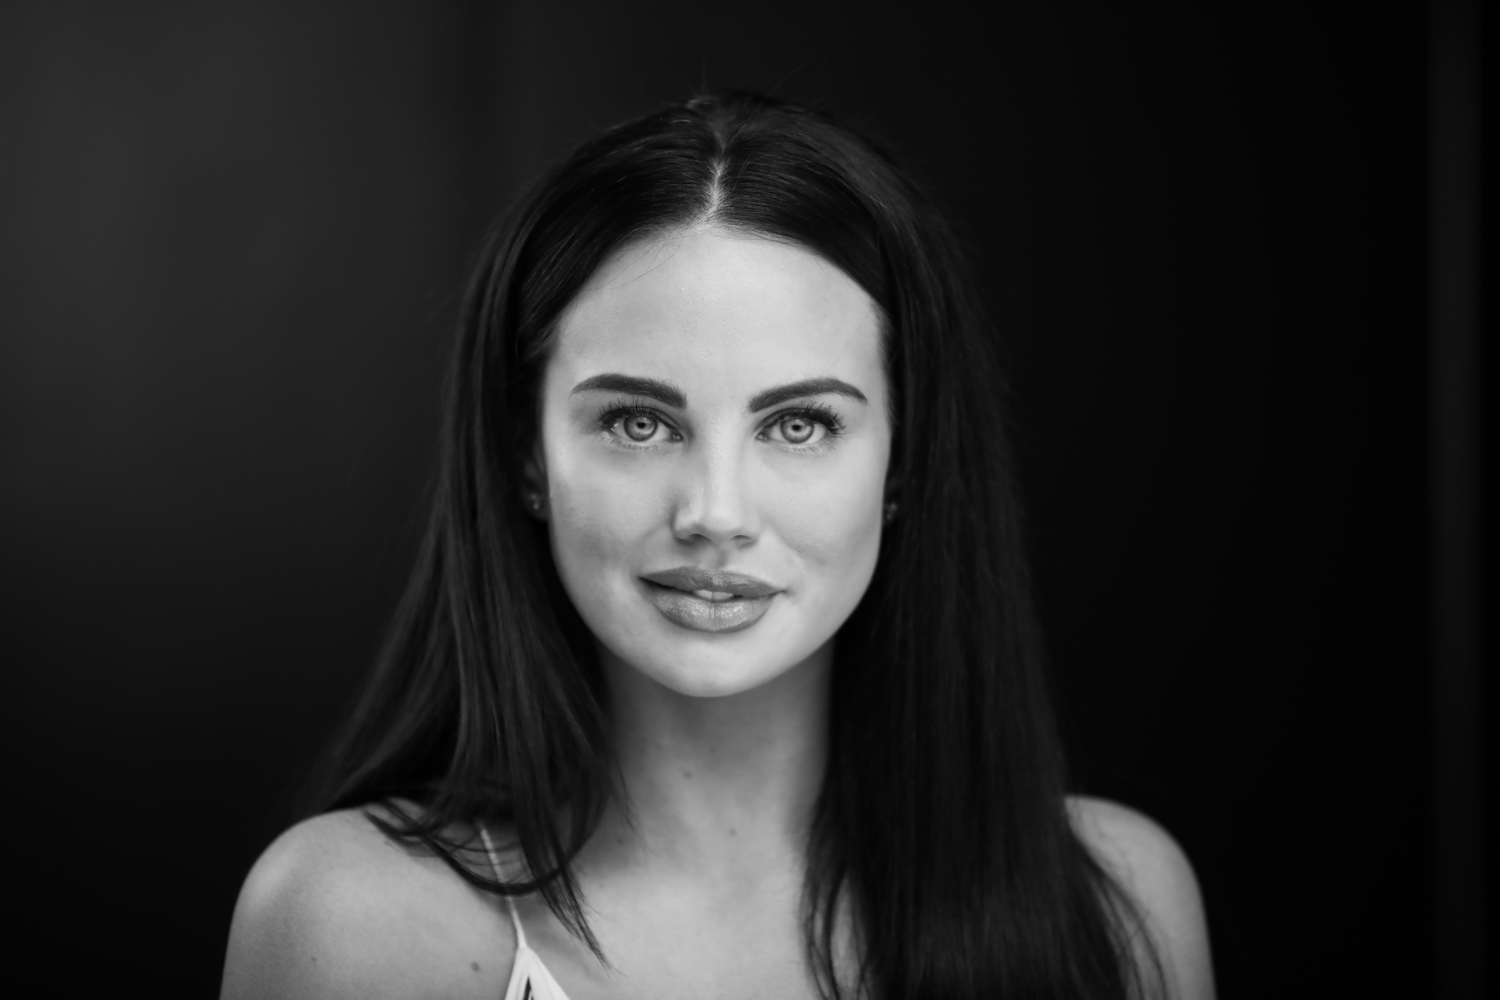 Review of the Westcott Eyelighter for Headshots and Portraits - dramatic b/w portrait